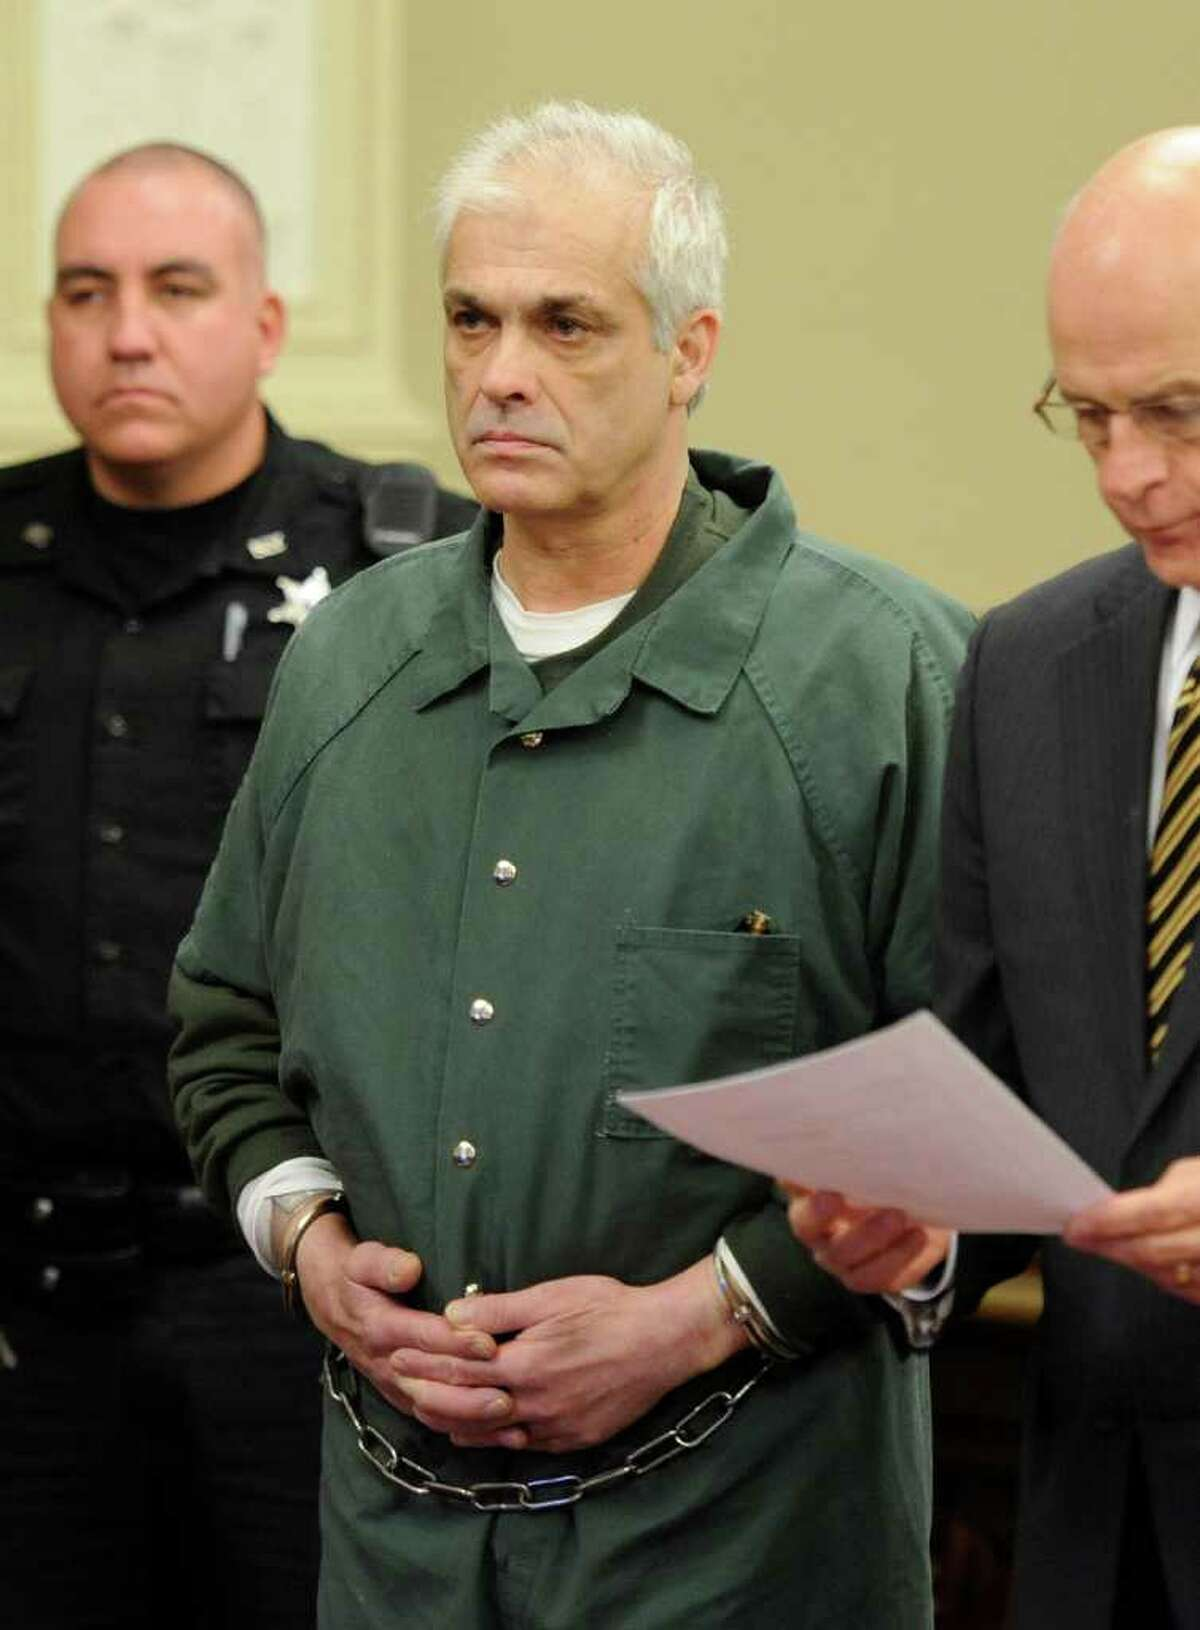 Rory Poulin, center is arraigned on murder charges at the Rensselaer County Courthouse in Troy, N.Y. Dec. 15, 2011. (Skip Dickstein / Times Union)